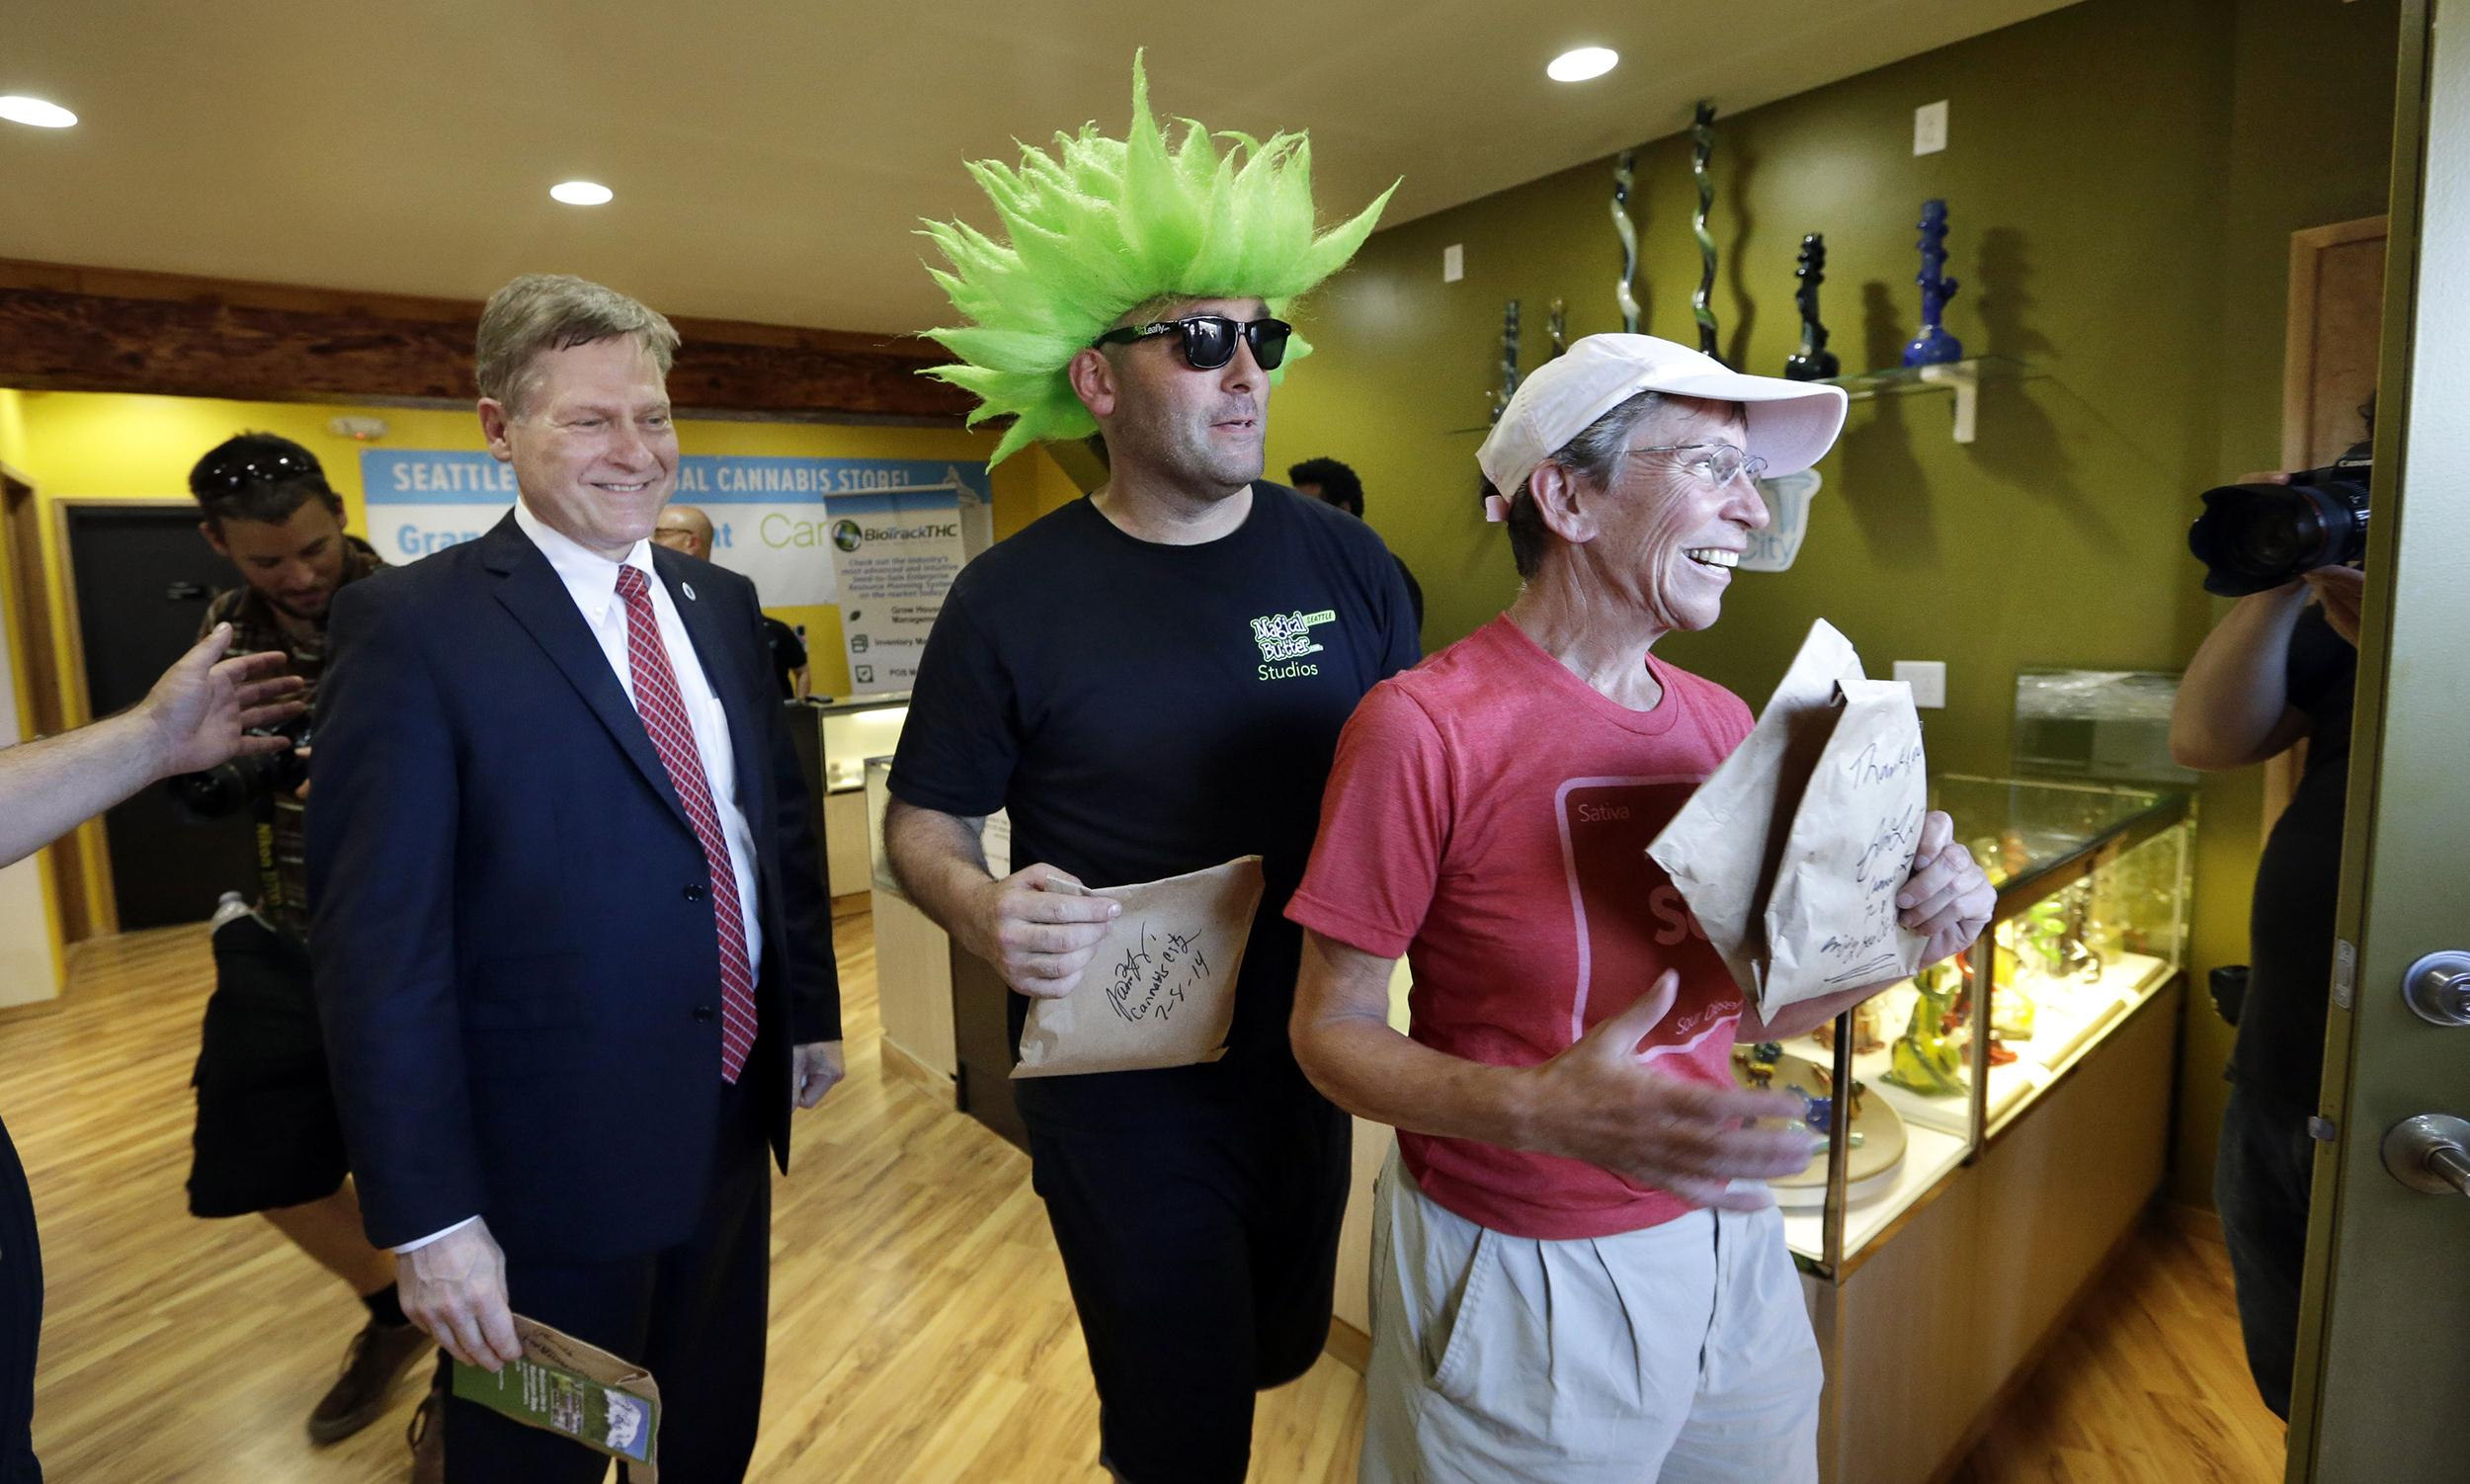 Image: Seattle City Attorney Pete Holmes, left, Jeremy Cooper and Deb Greene walk out after being among the very first customers to legally purchase recreational pot in Seattle at Cannabis City, Tuesday, July